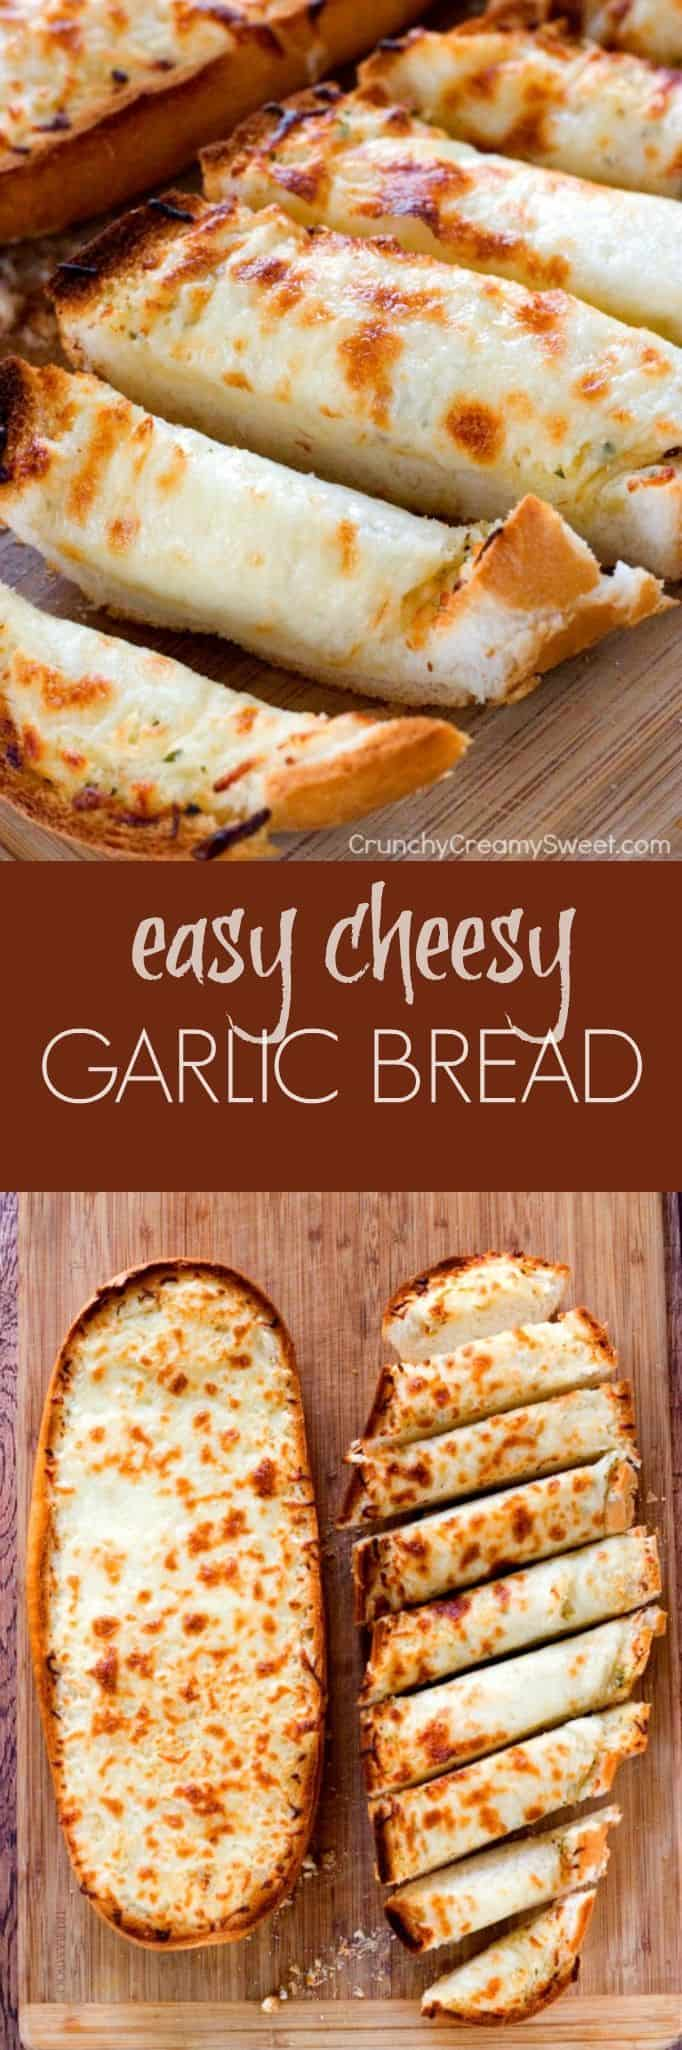 easy cheesy garlic bread long Easy Cheesy Garlic Bread